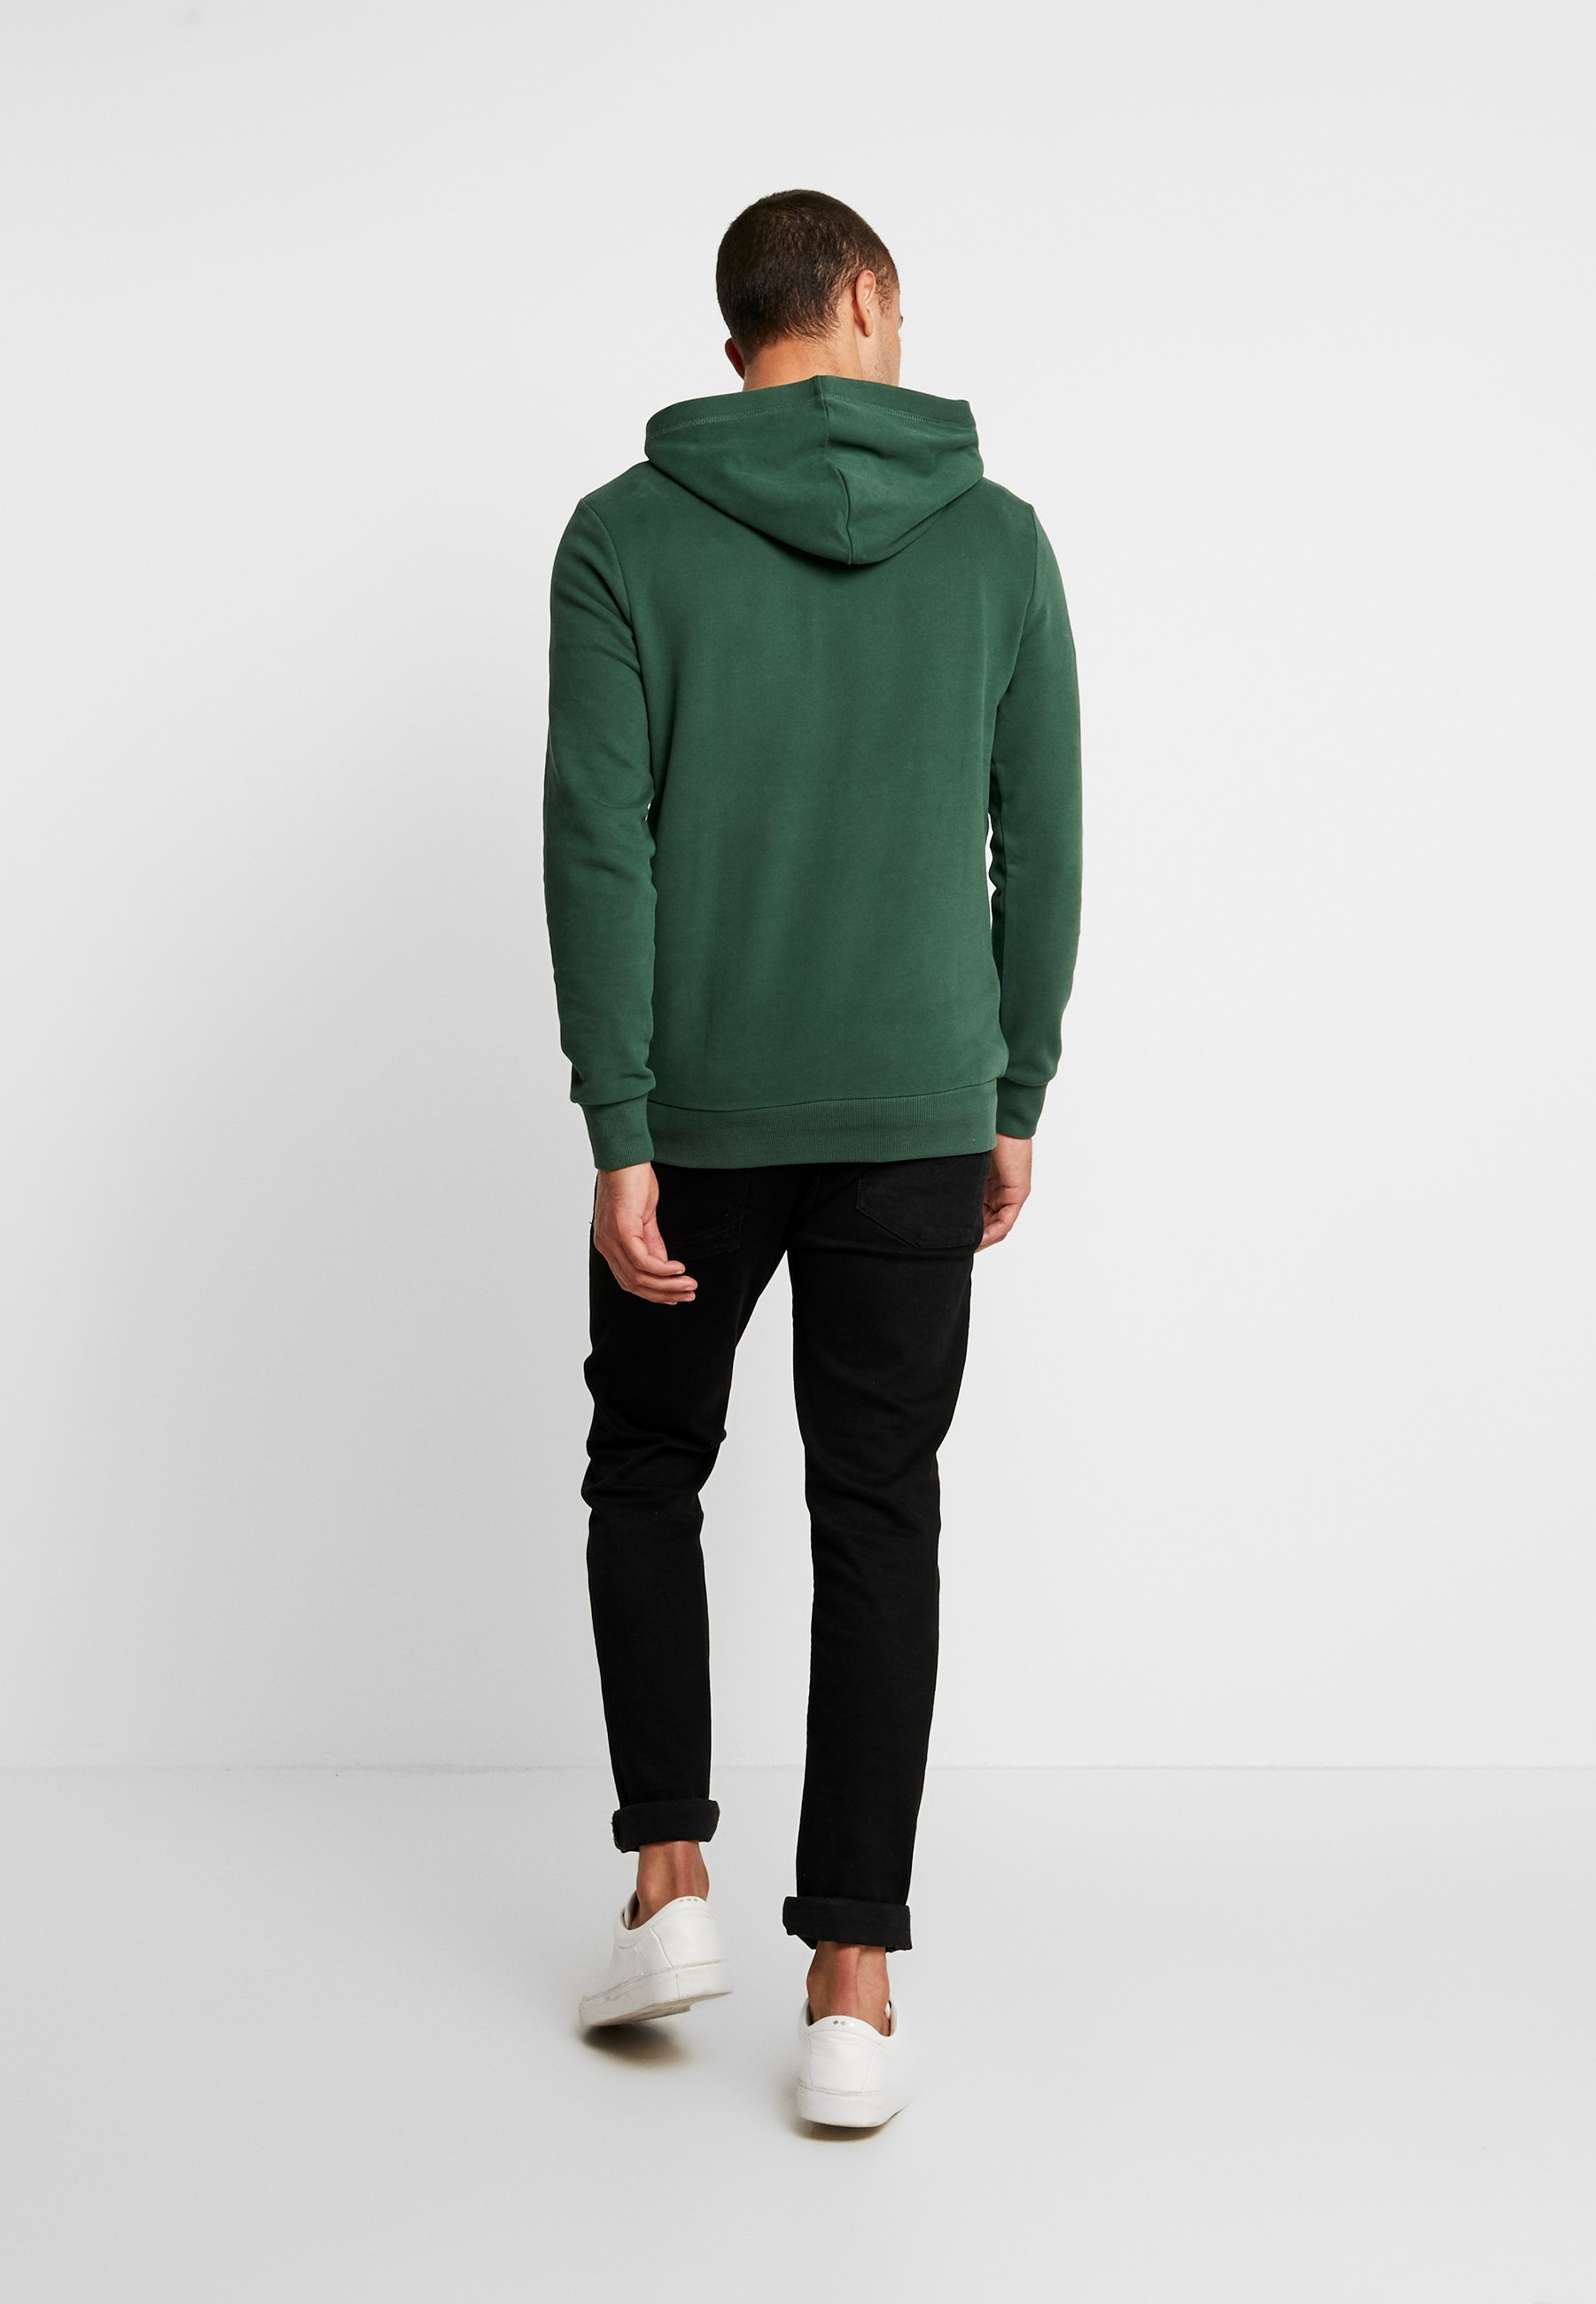 TOM TAILOR DENIM HOODY CHESTPRINT - Kapuzenpullover pineneedle green